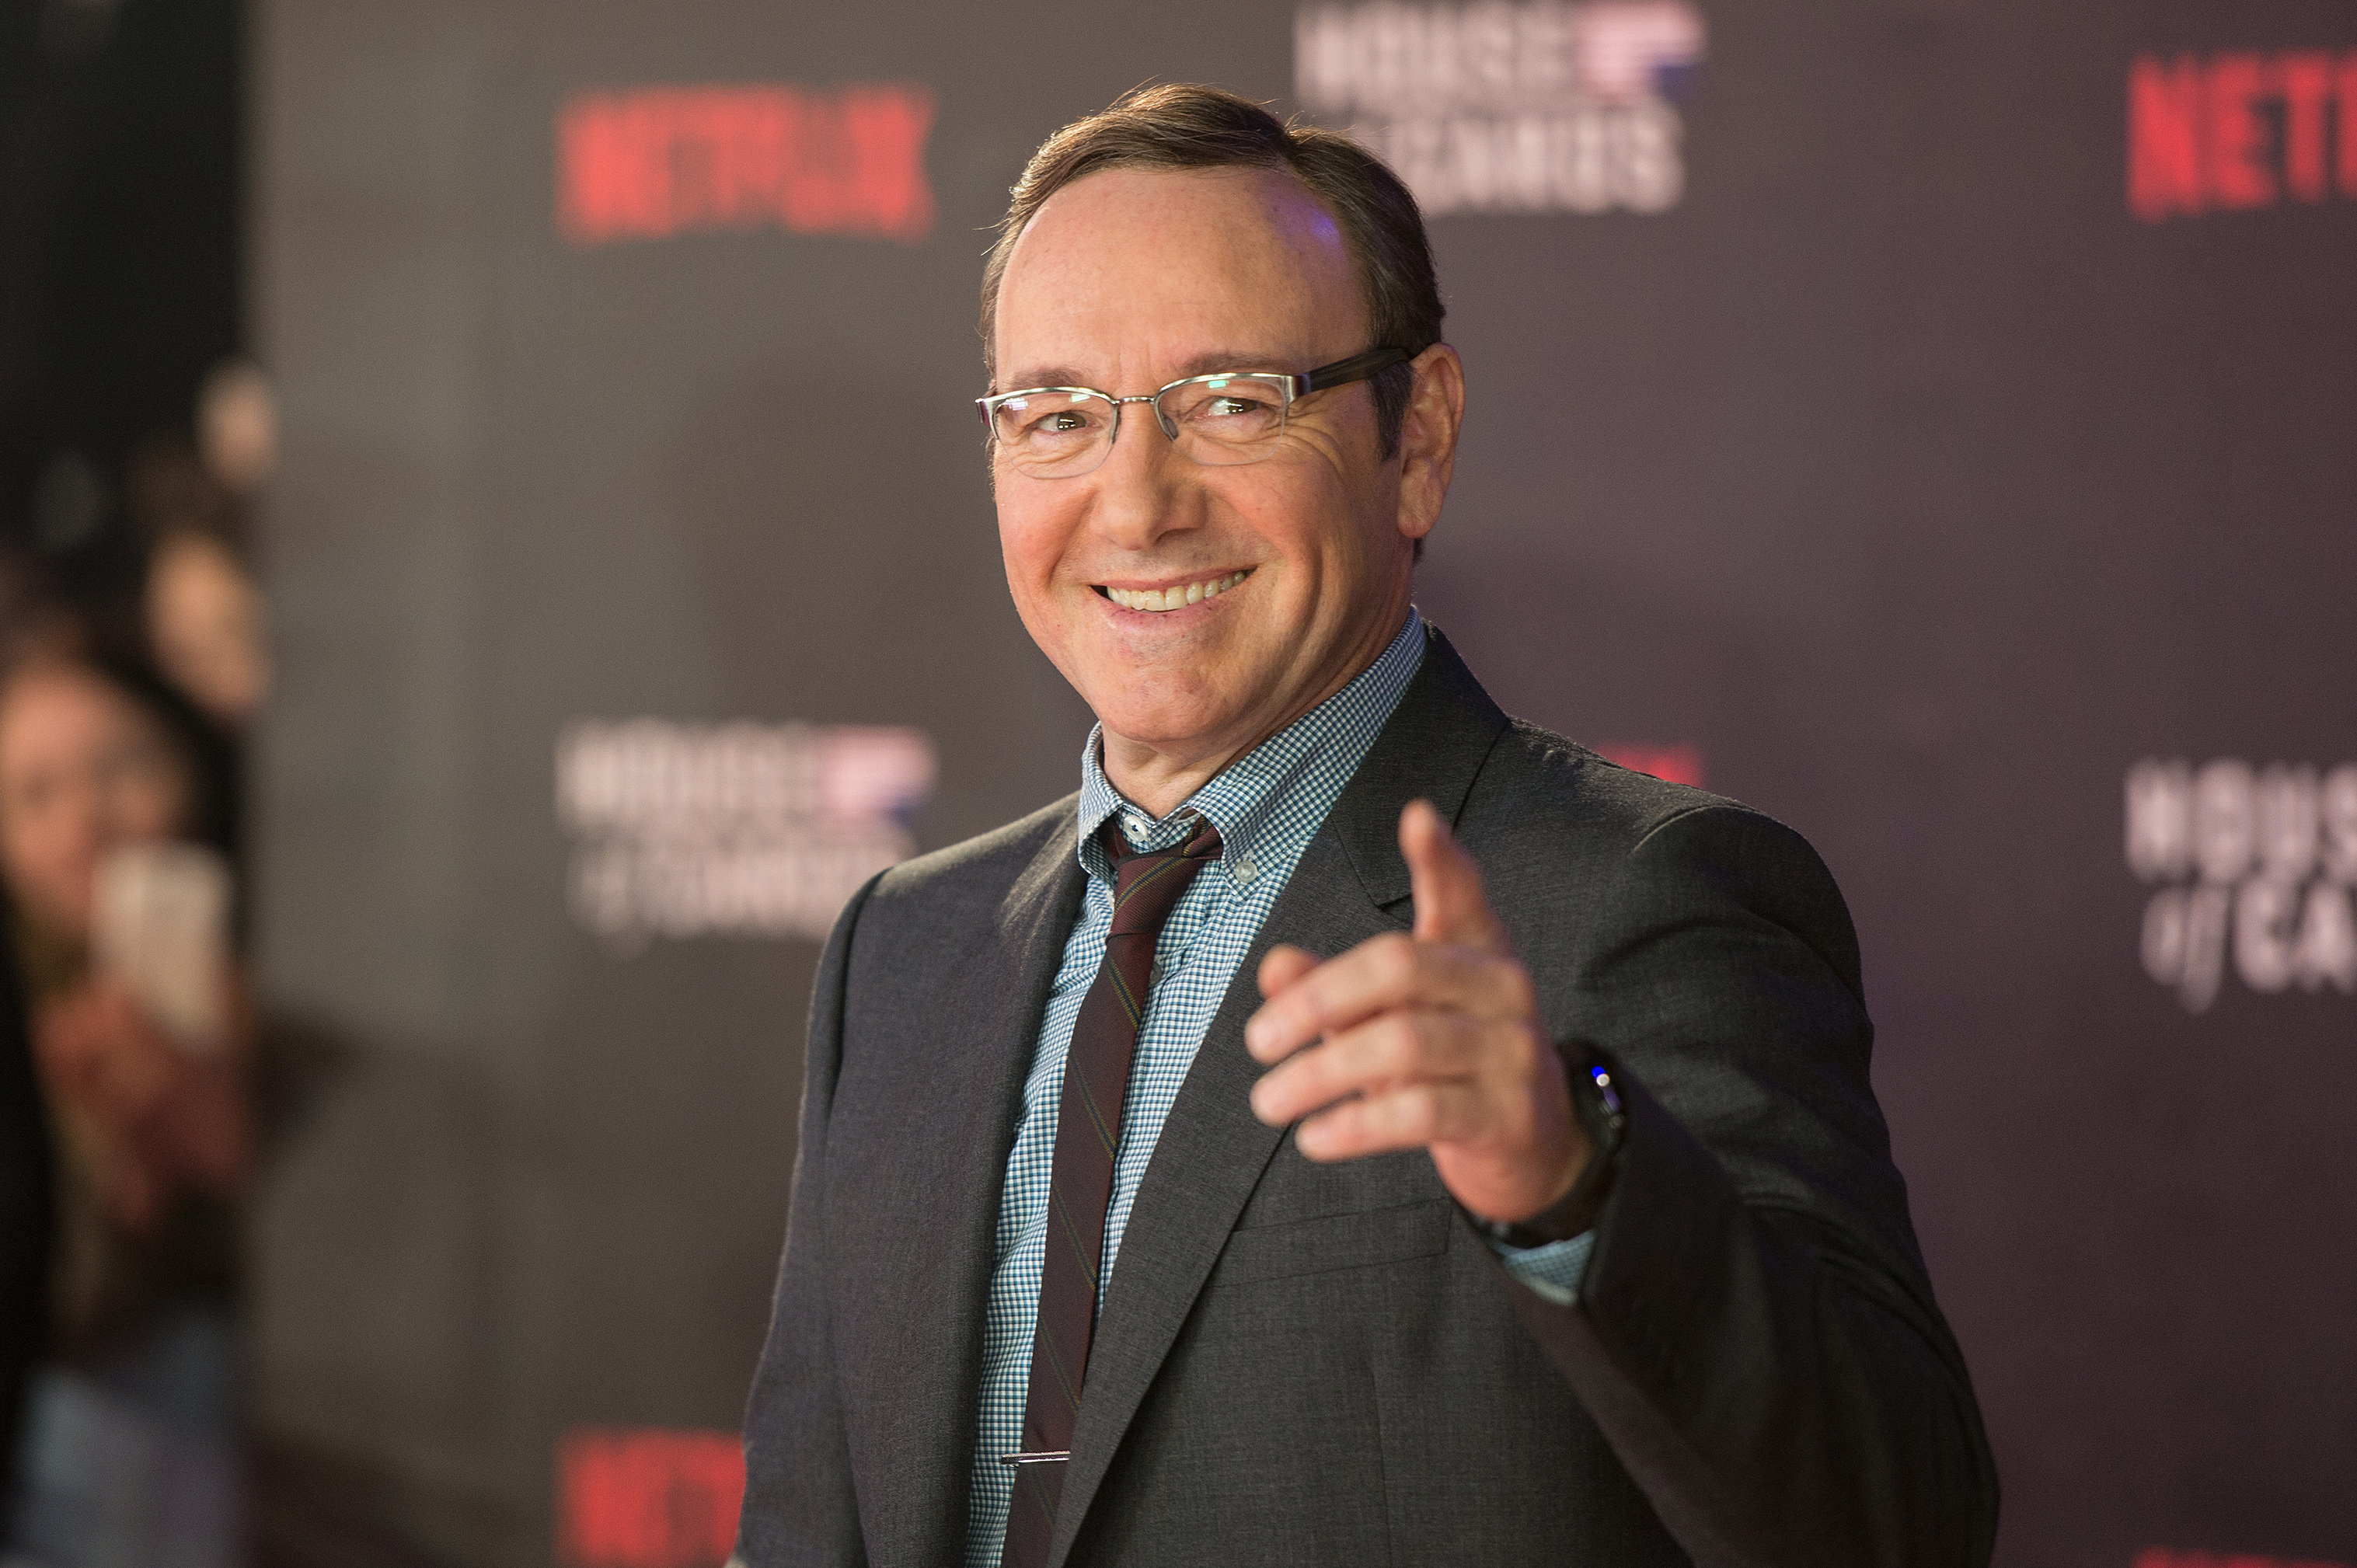 House Of Cards - UK TV premiere held at the Empire Leicester Square, Arrivals.  Featuring: Kevin Spacey Where: London, United Kingdom When: 26 Feb 2015 Credit: Daniel Deme/WENN.com